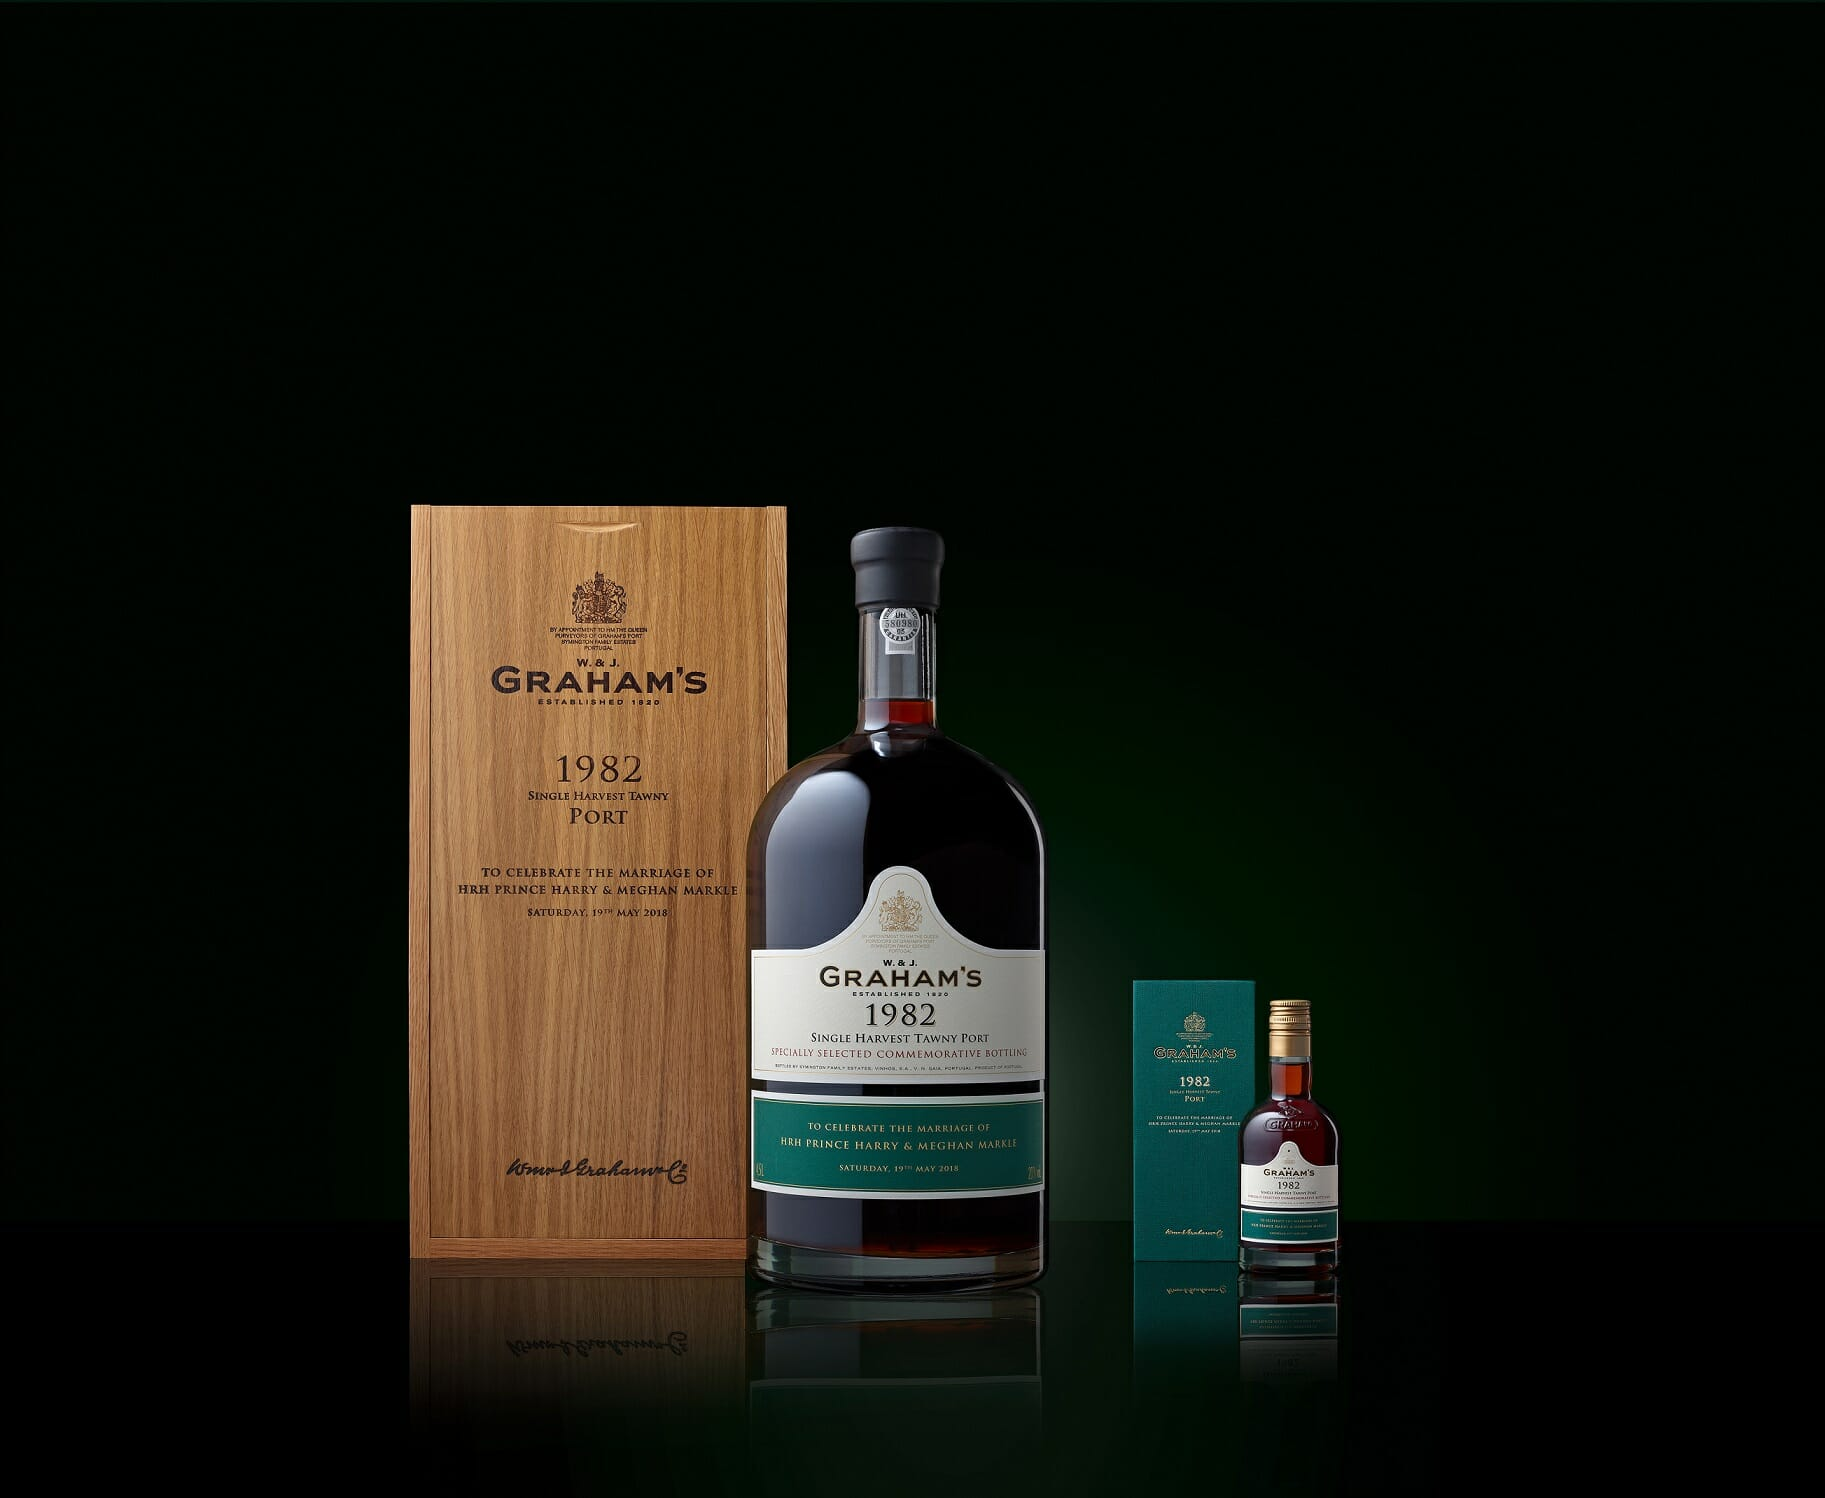 Grahams 1982 Jeroboam E 20cl